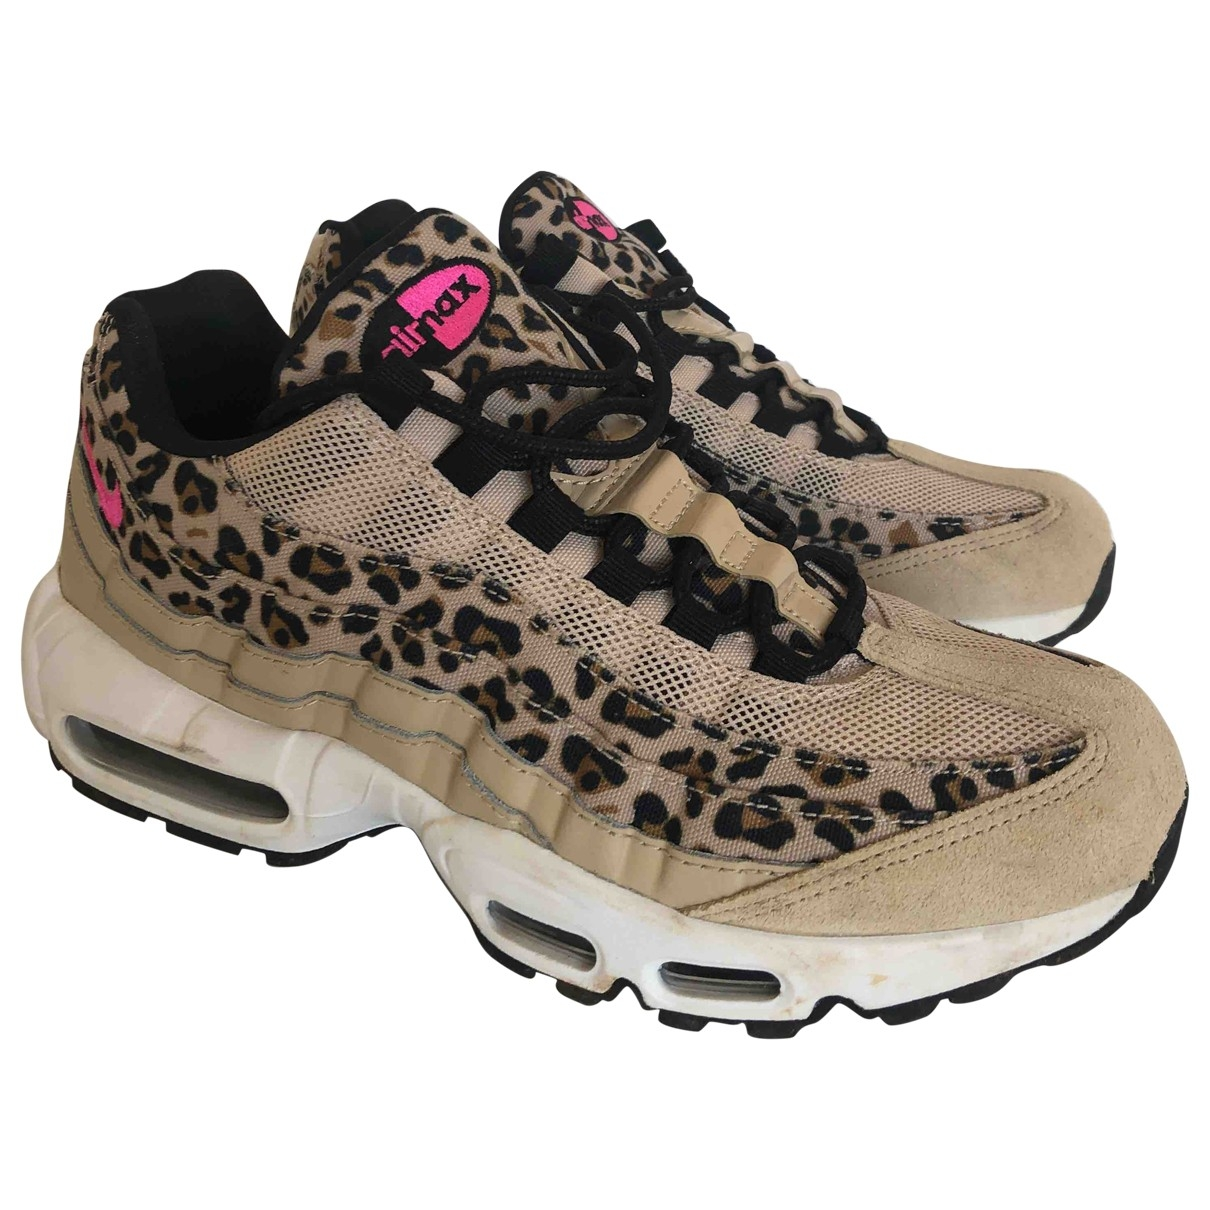 Nike Air Max 95 Beige Leather Trainers for Women 7 UK